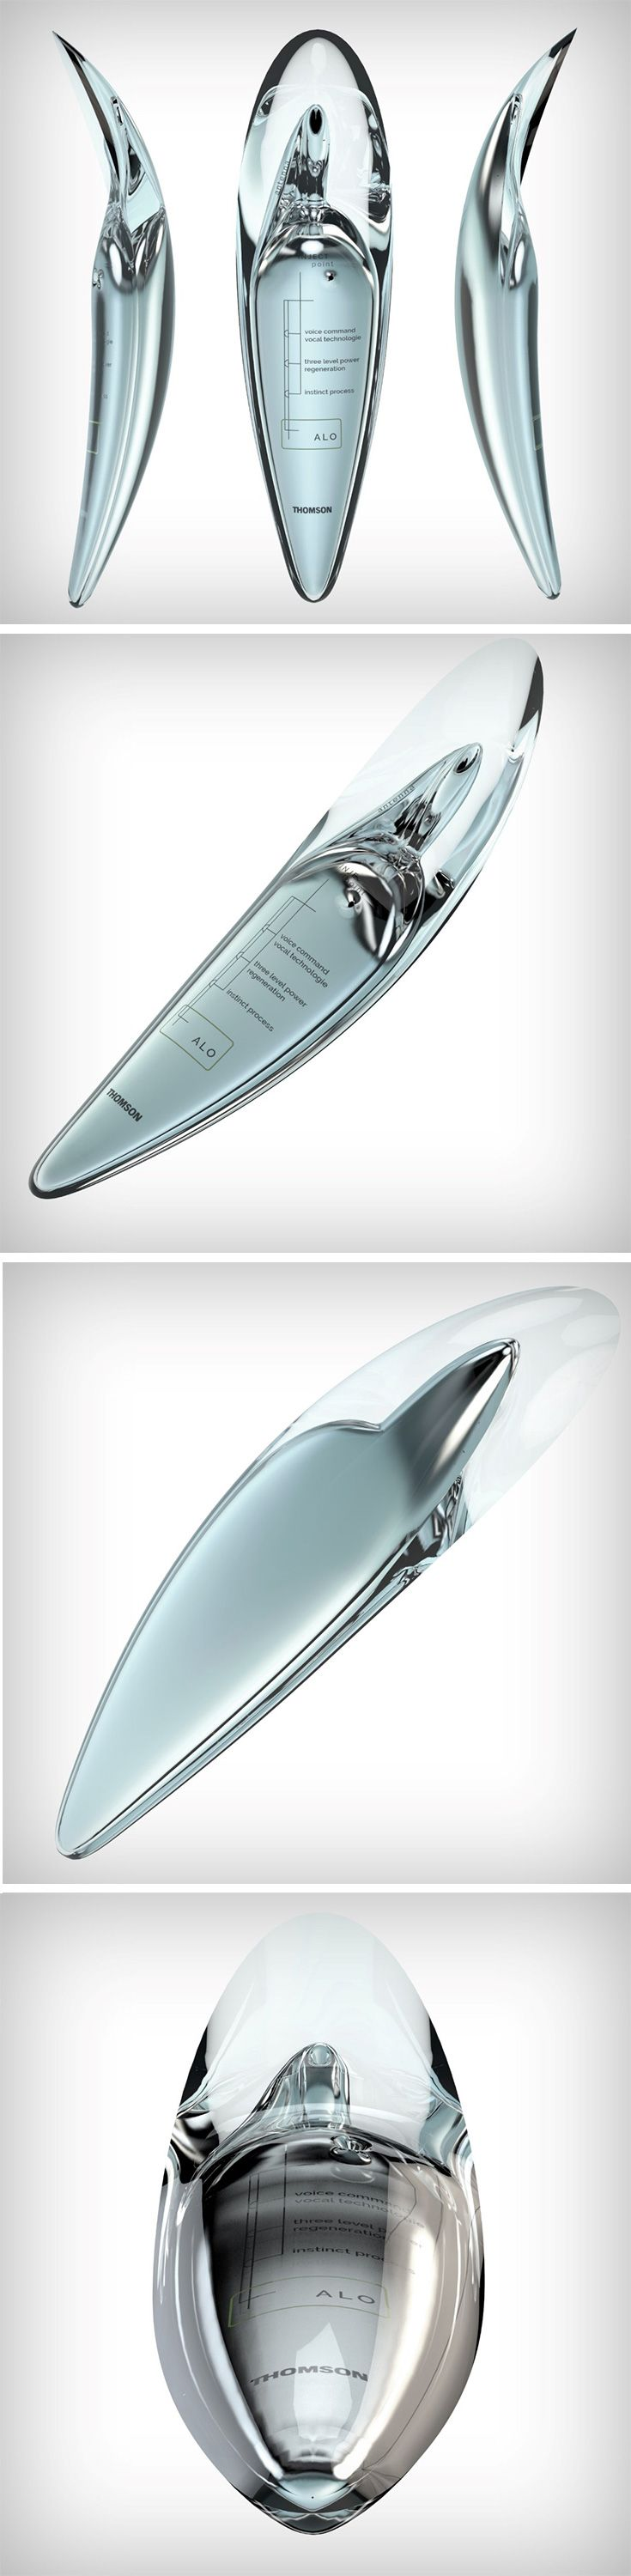 A conceptual product designed with Philippe Starck more than 20 years ago, the Alo phone was recently relaunched as a refined design concept for a phone. Made for a future dominated by Siris and Alexas, the Alo phone comes without a screen and relies solely on voice communication. The phone's body is made of a gelatinous material wrapped around an aluminum unibody, and its form designed to be placed perpetually against the ear.